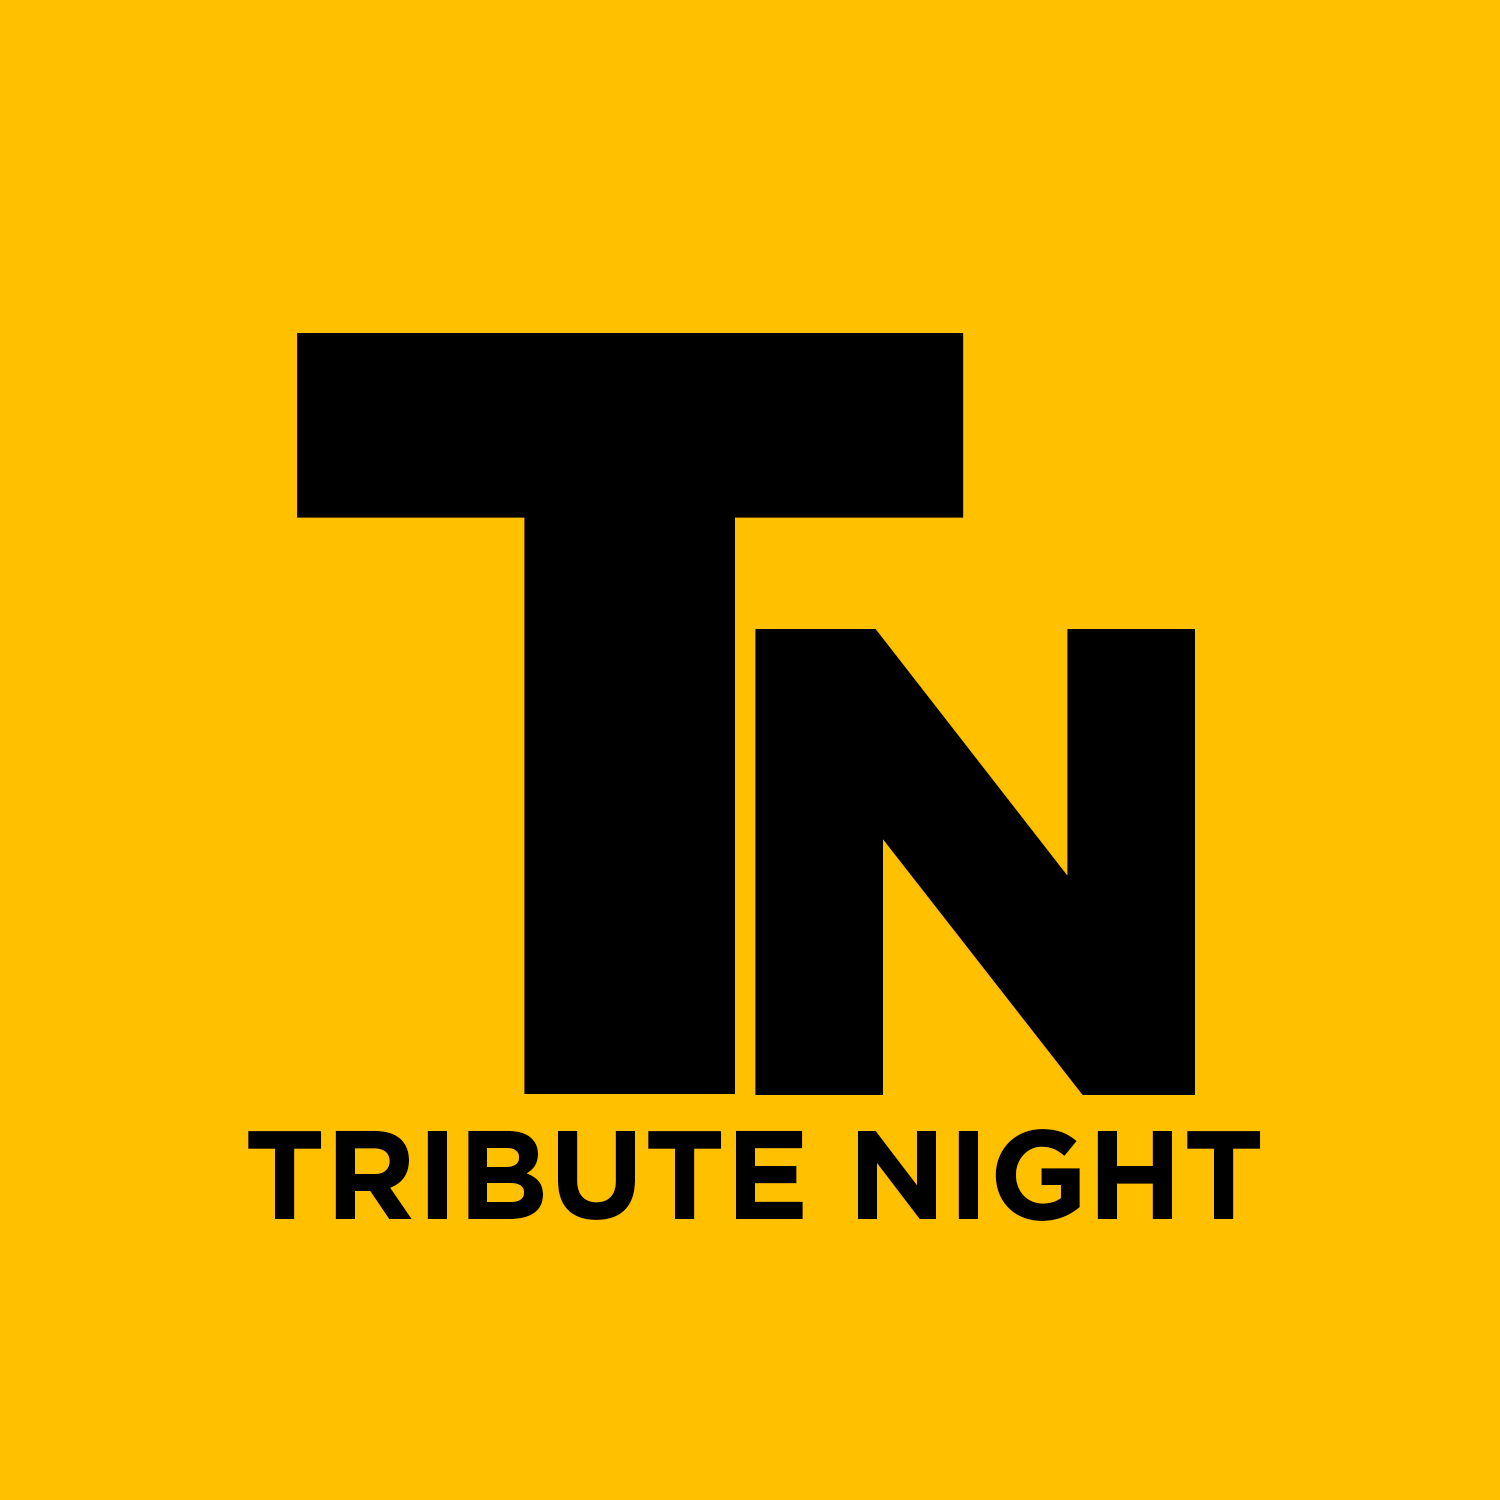 Tribute Night